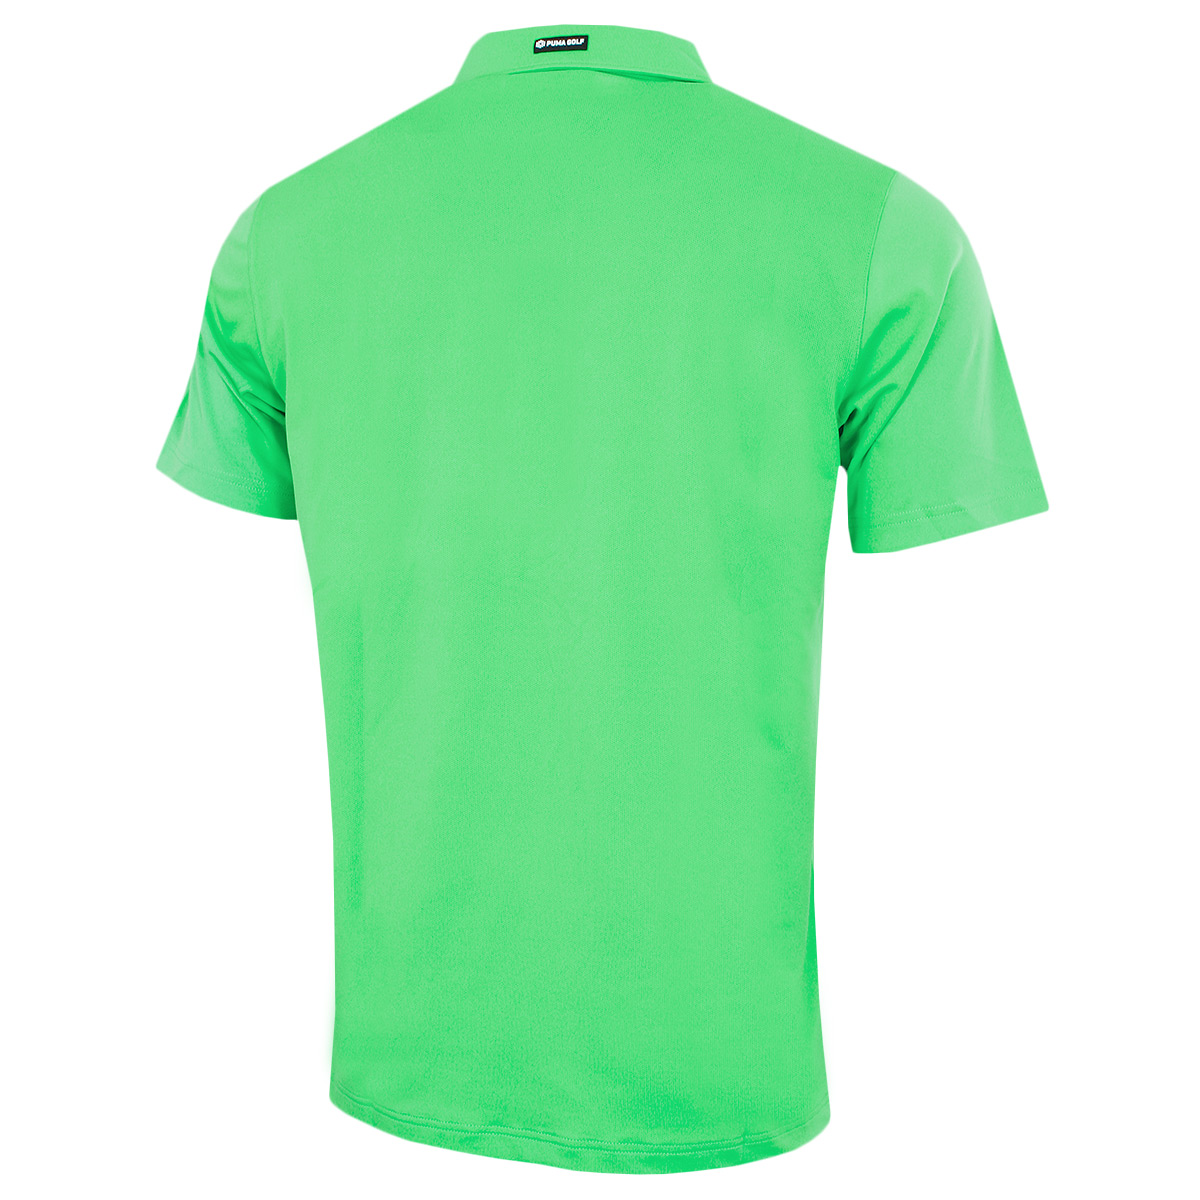 Puma-Golf-Mens-Essential-Pounce-Polo-Shirt-DryCell-Lightweight-Tech-43-OFF-RRP thumbnail 3